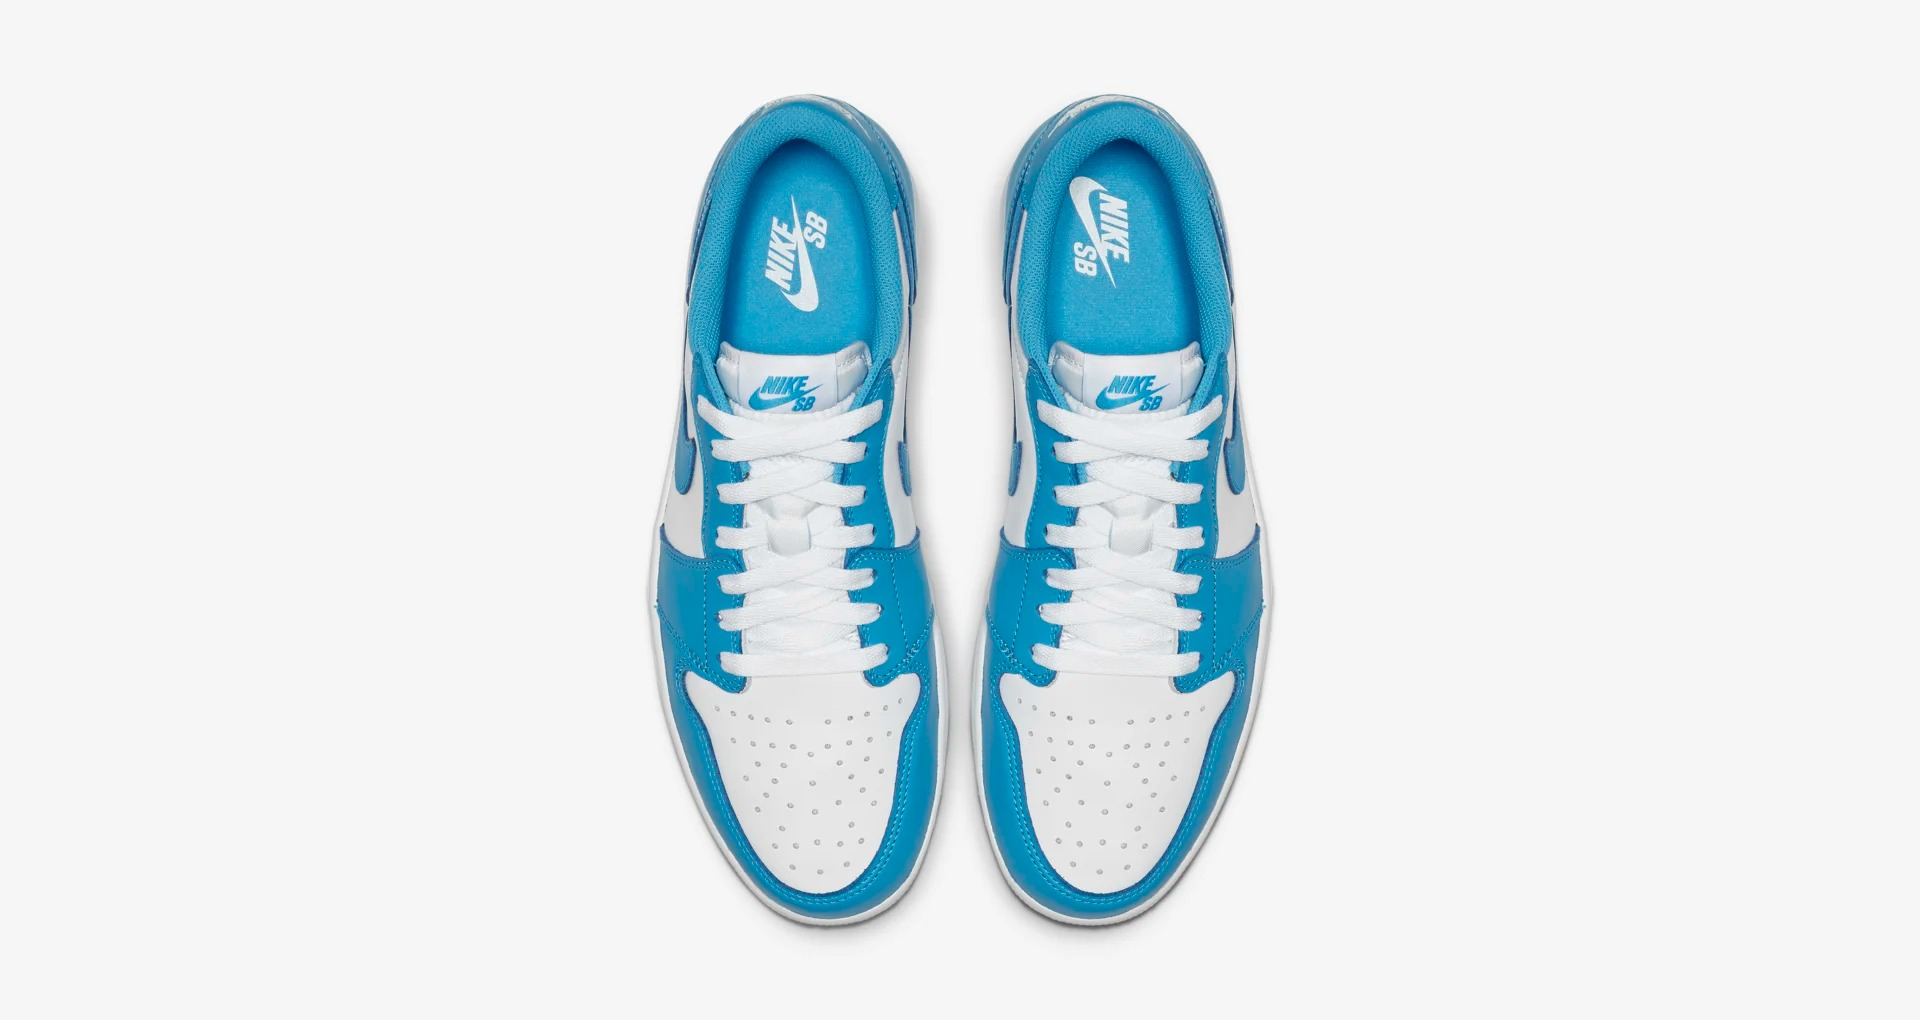 CJ7891 401 Air Jordan 1 Low SB Dark Powder Blue 5